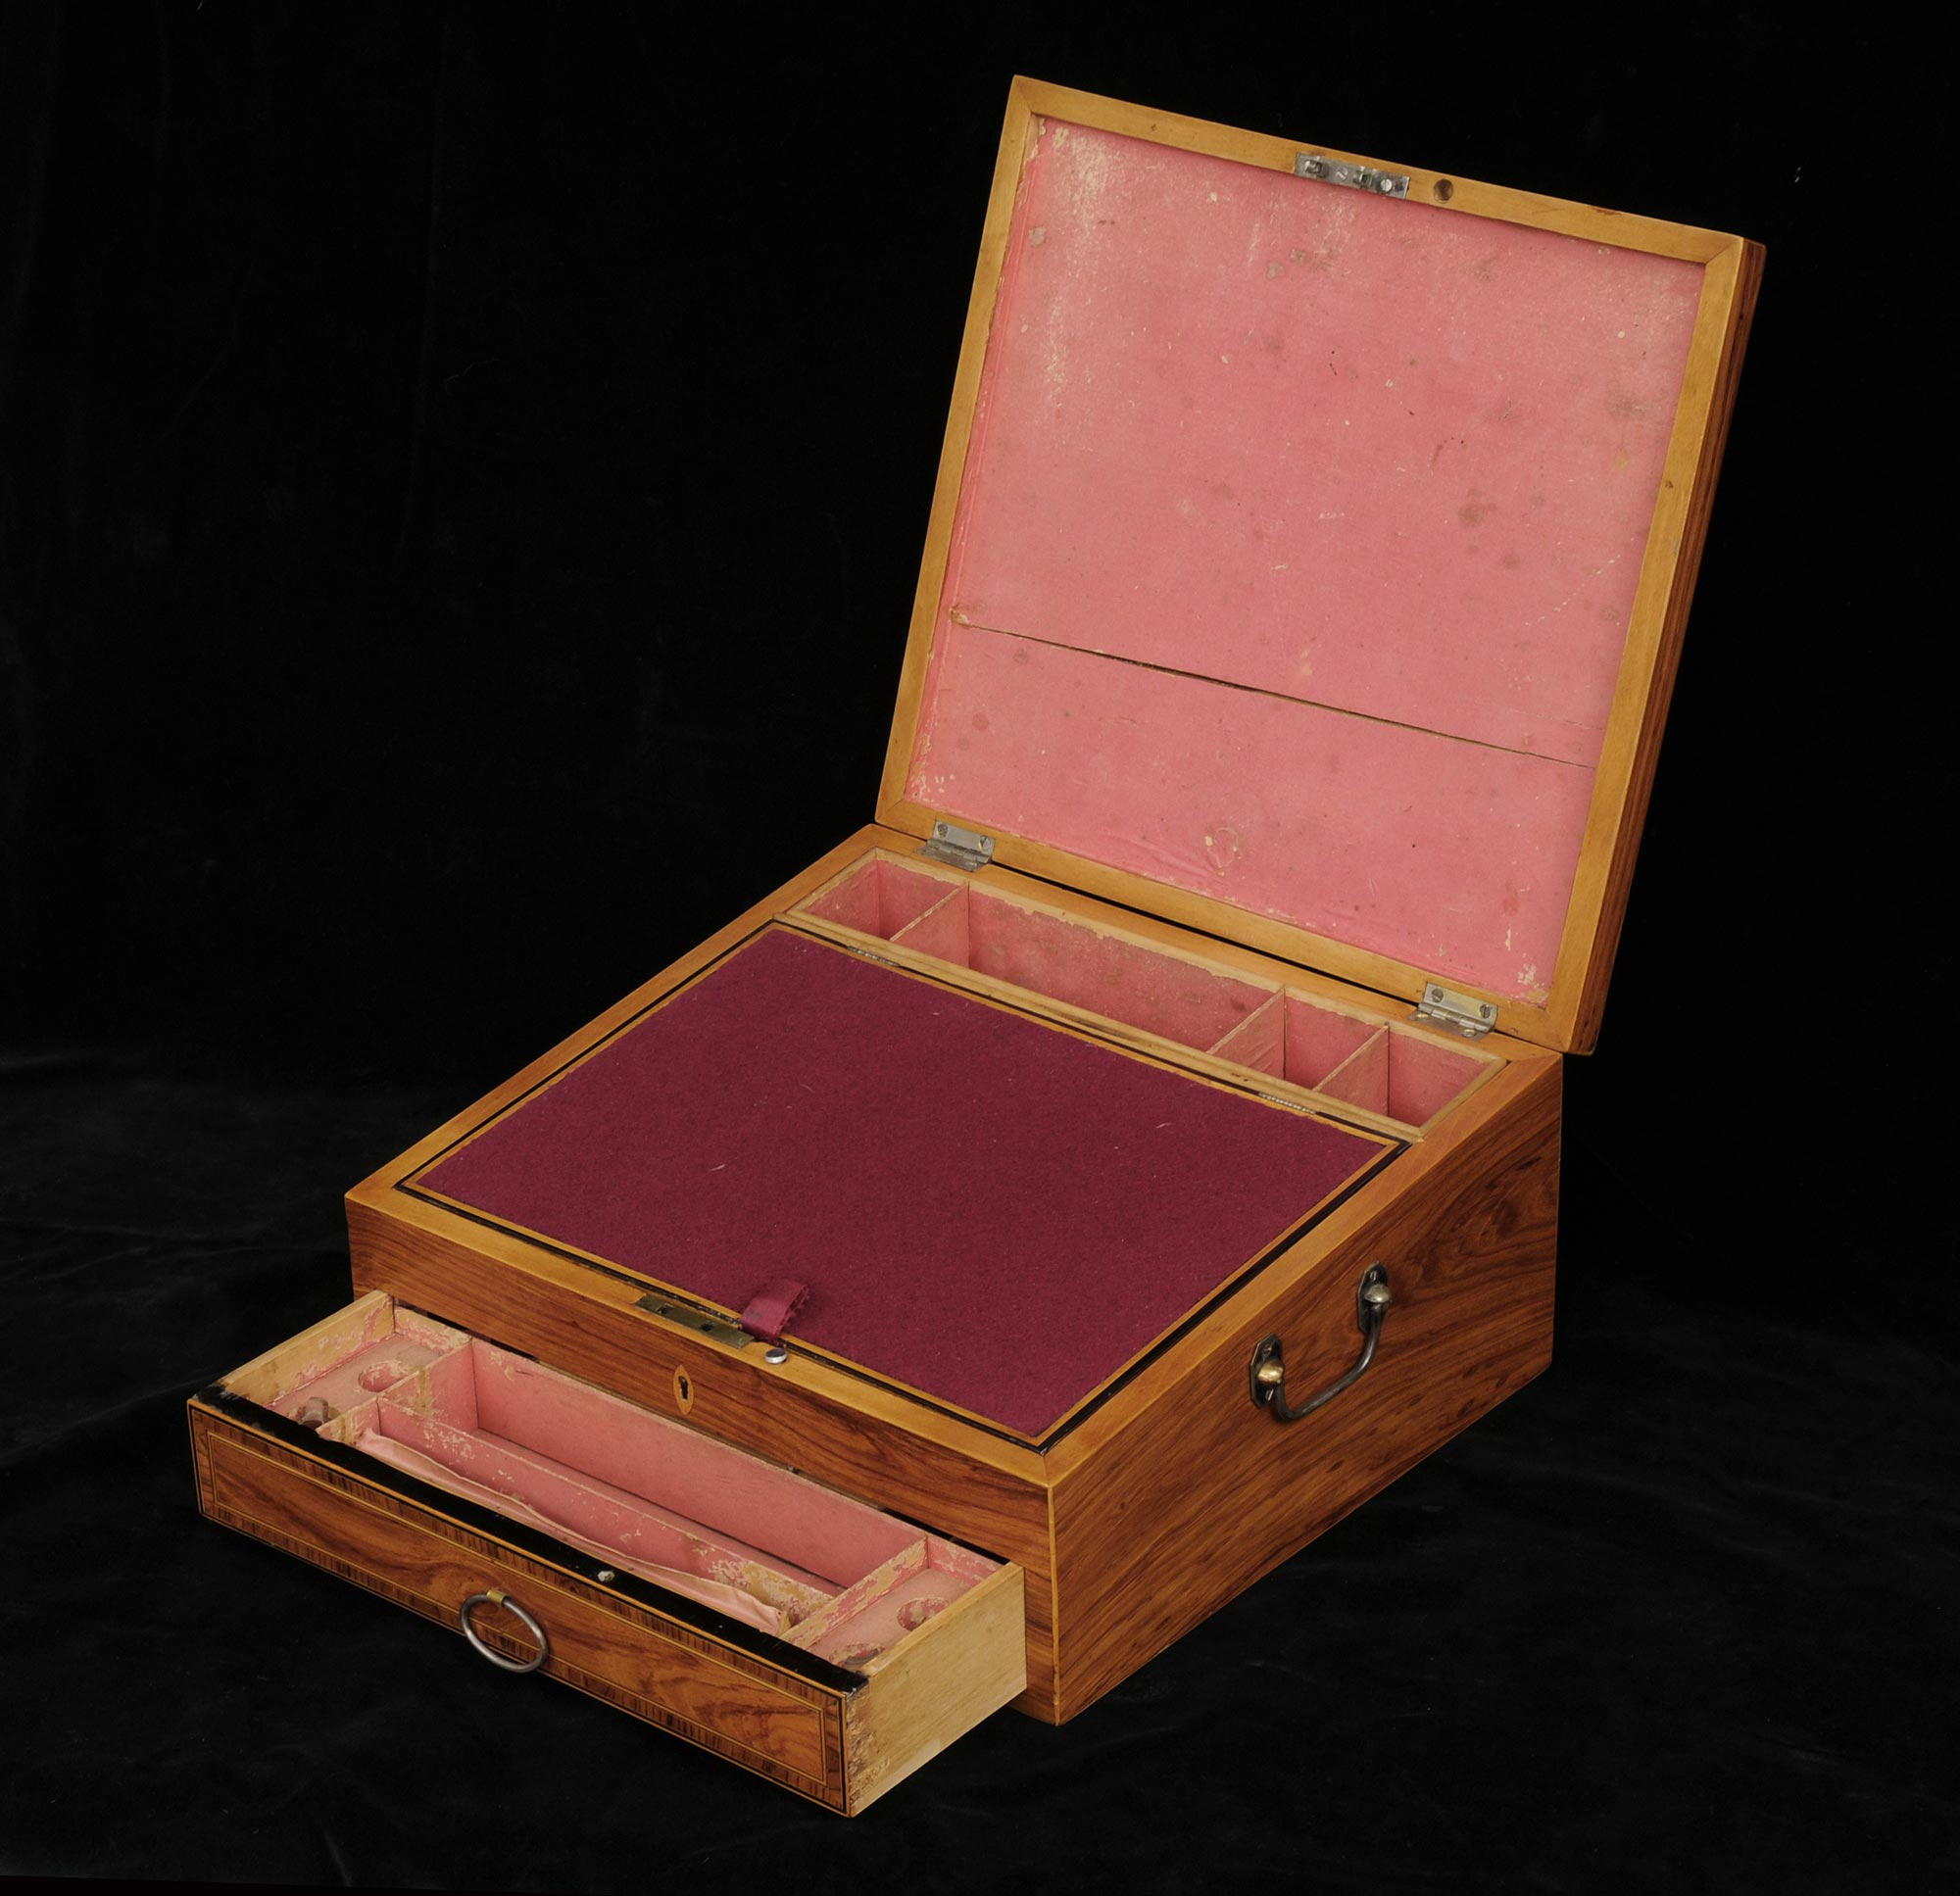 Antique Regency Ladies Toilet Box Circa 1820